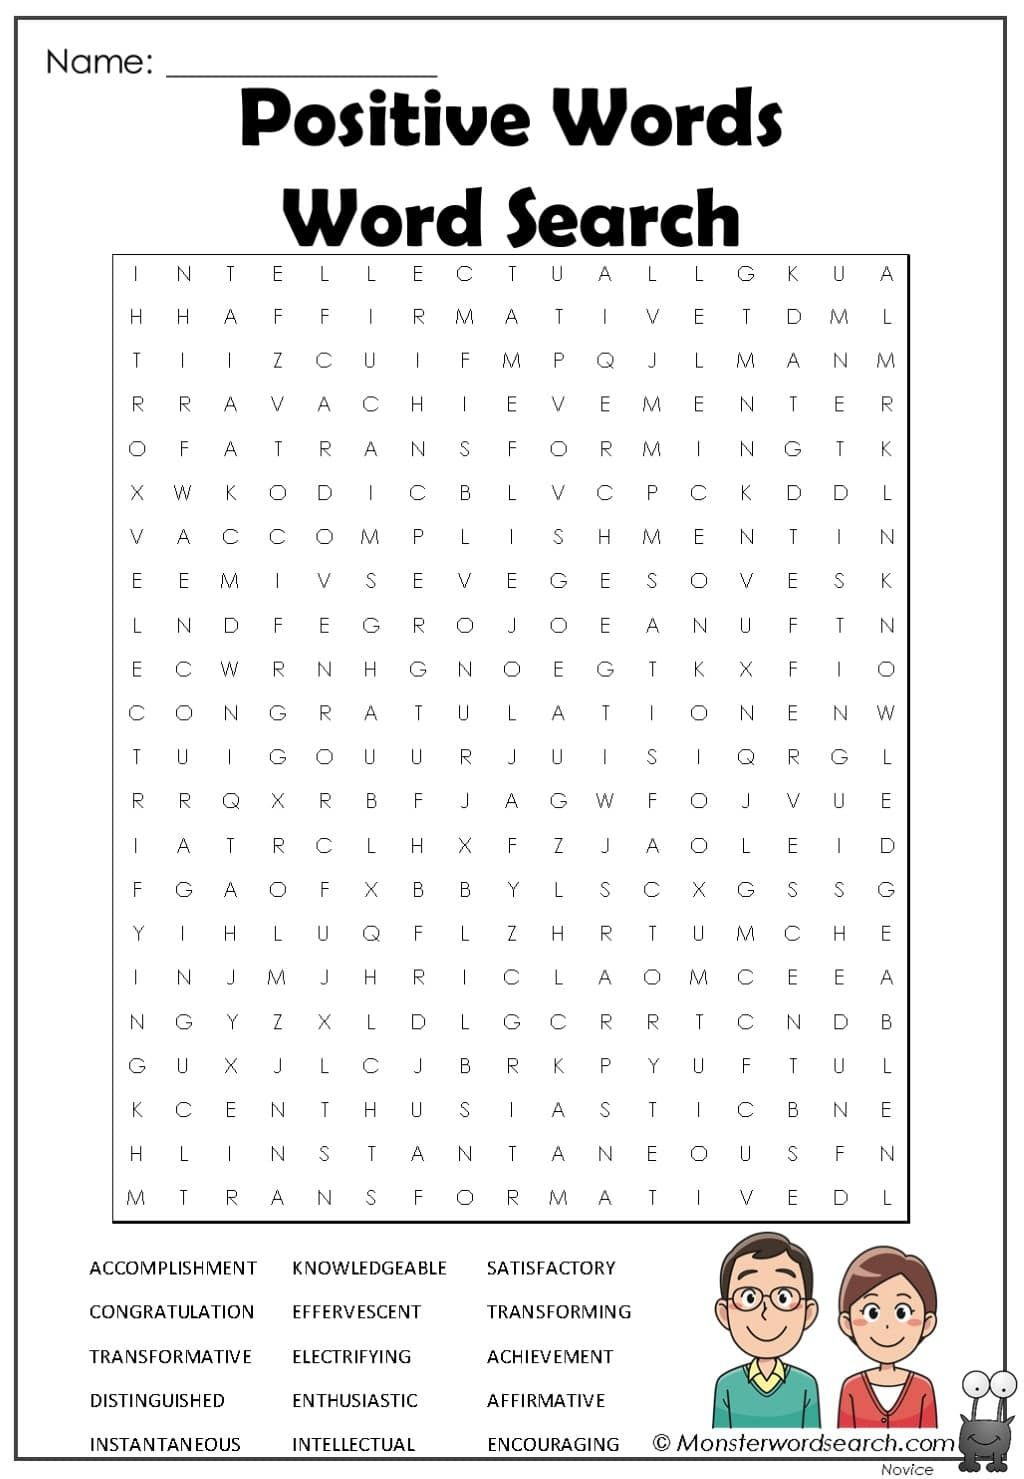 Positive Words Word Search In 2021 Positive Words Vocabulary Words Making Words [ 1479 x 1024 Pixel ]